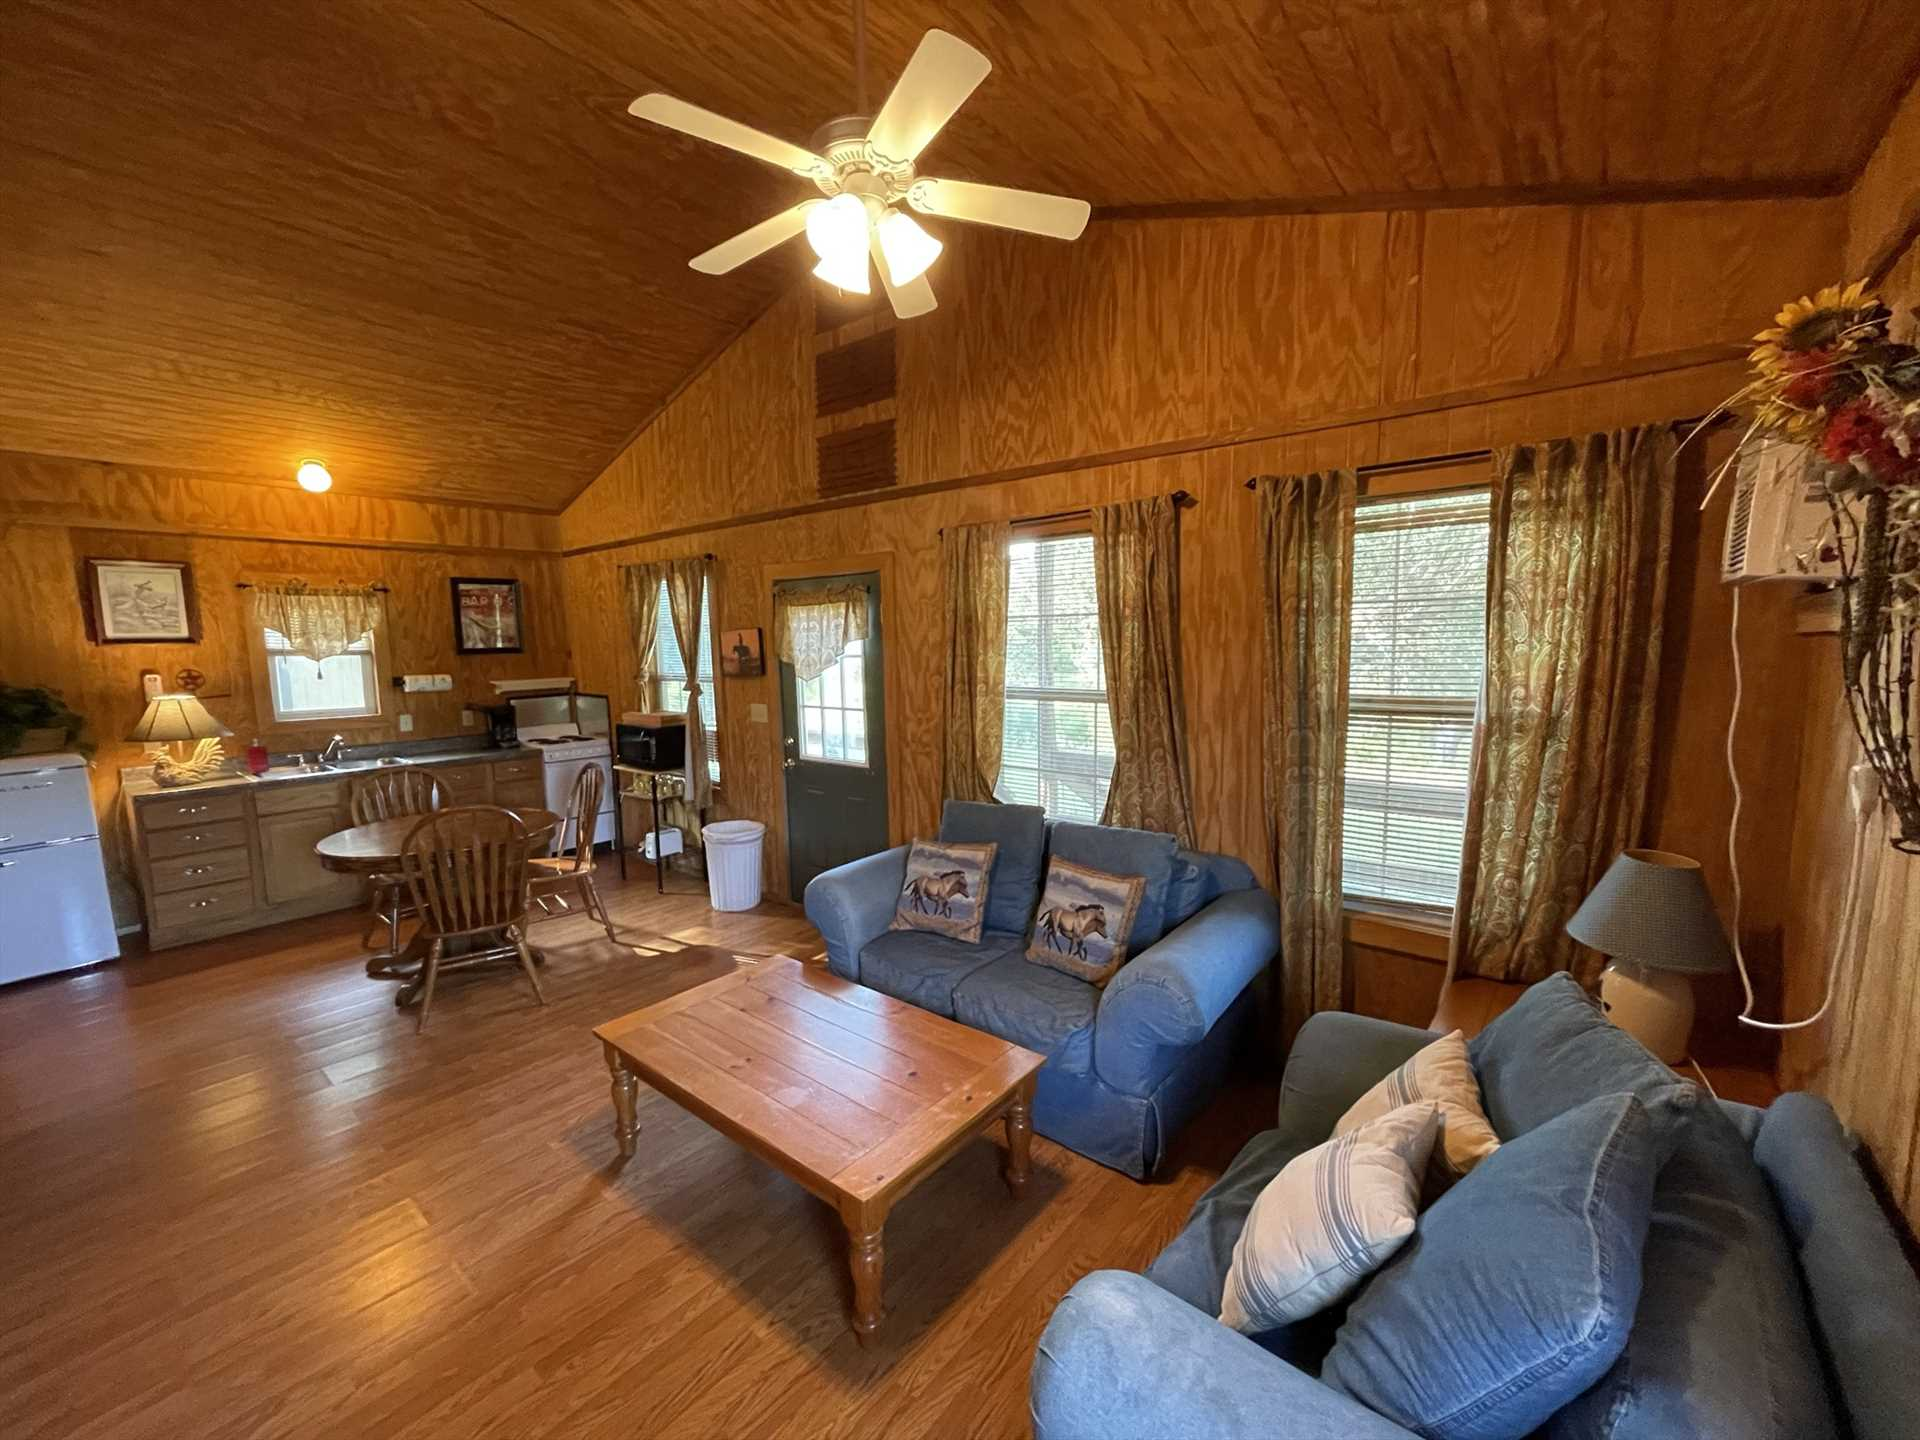 The Lone Star Cabin's open living, dining, and kitchen area sets the stage for creating fun memories!